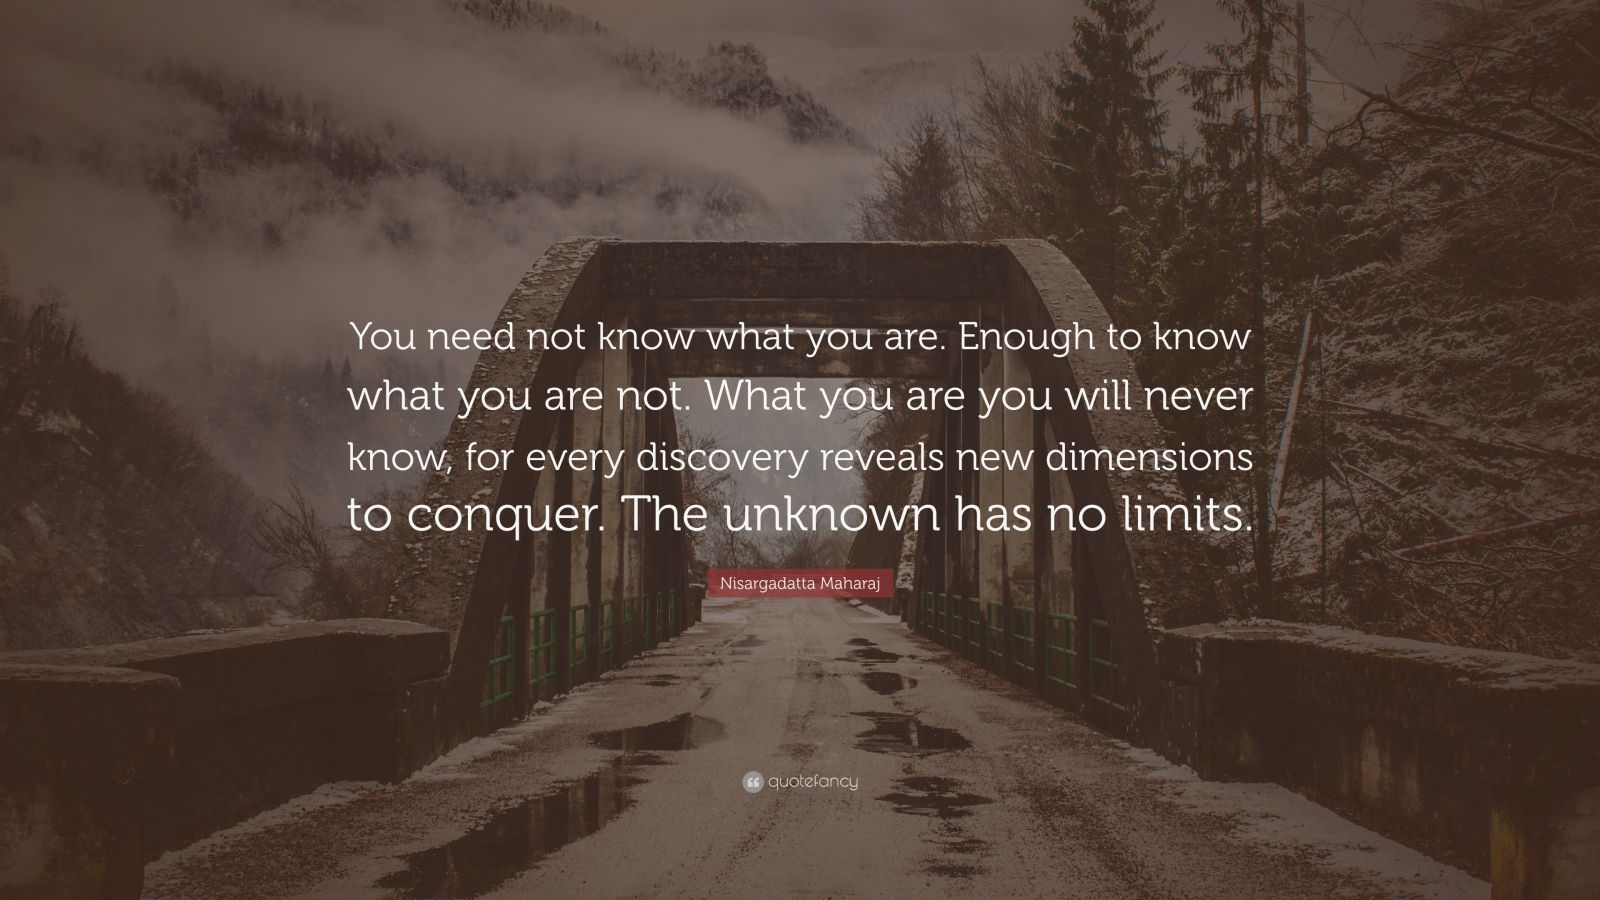 """Nisargadatta Maharaj Quote: """"You need not know what you are. Enough to know what you are not. What you are you will never know, for every discovery reveals new dimensions to conquer. The unknown has no limits."""""""